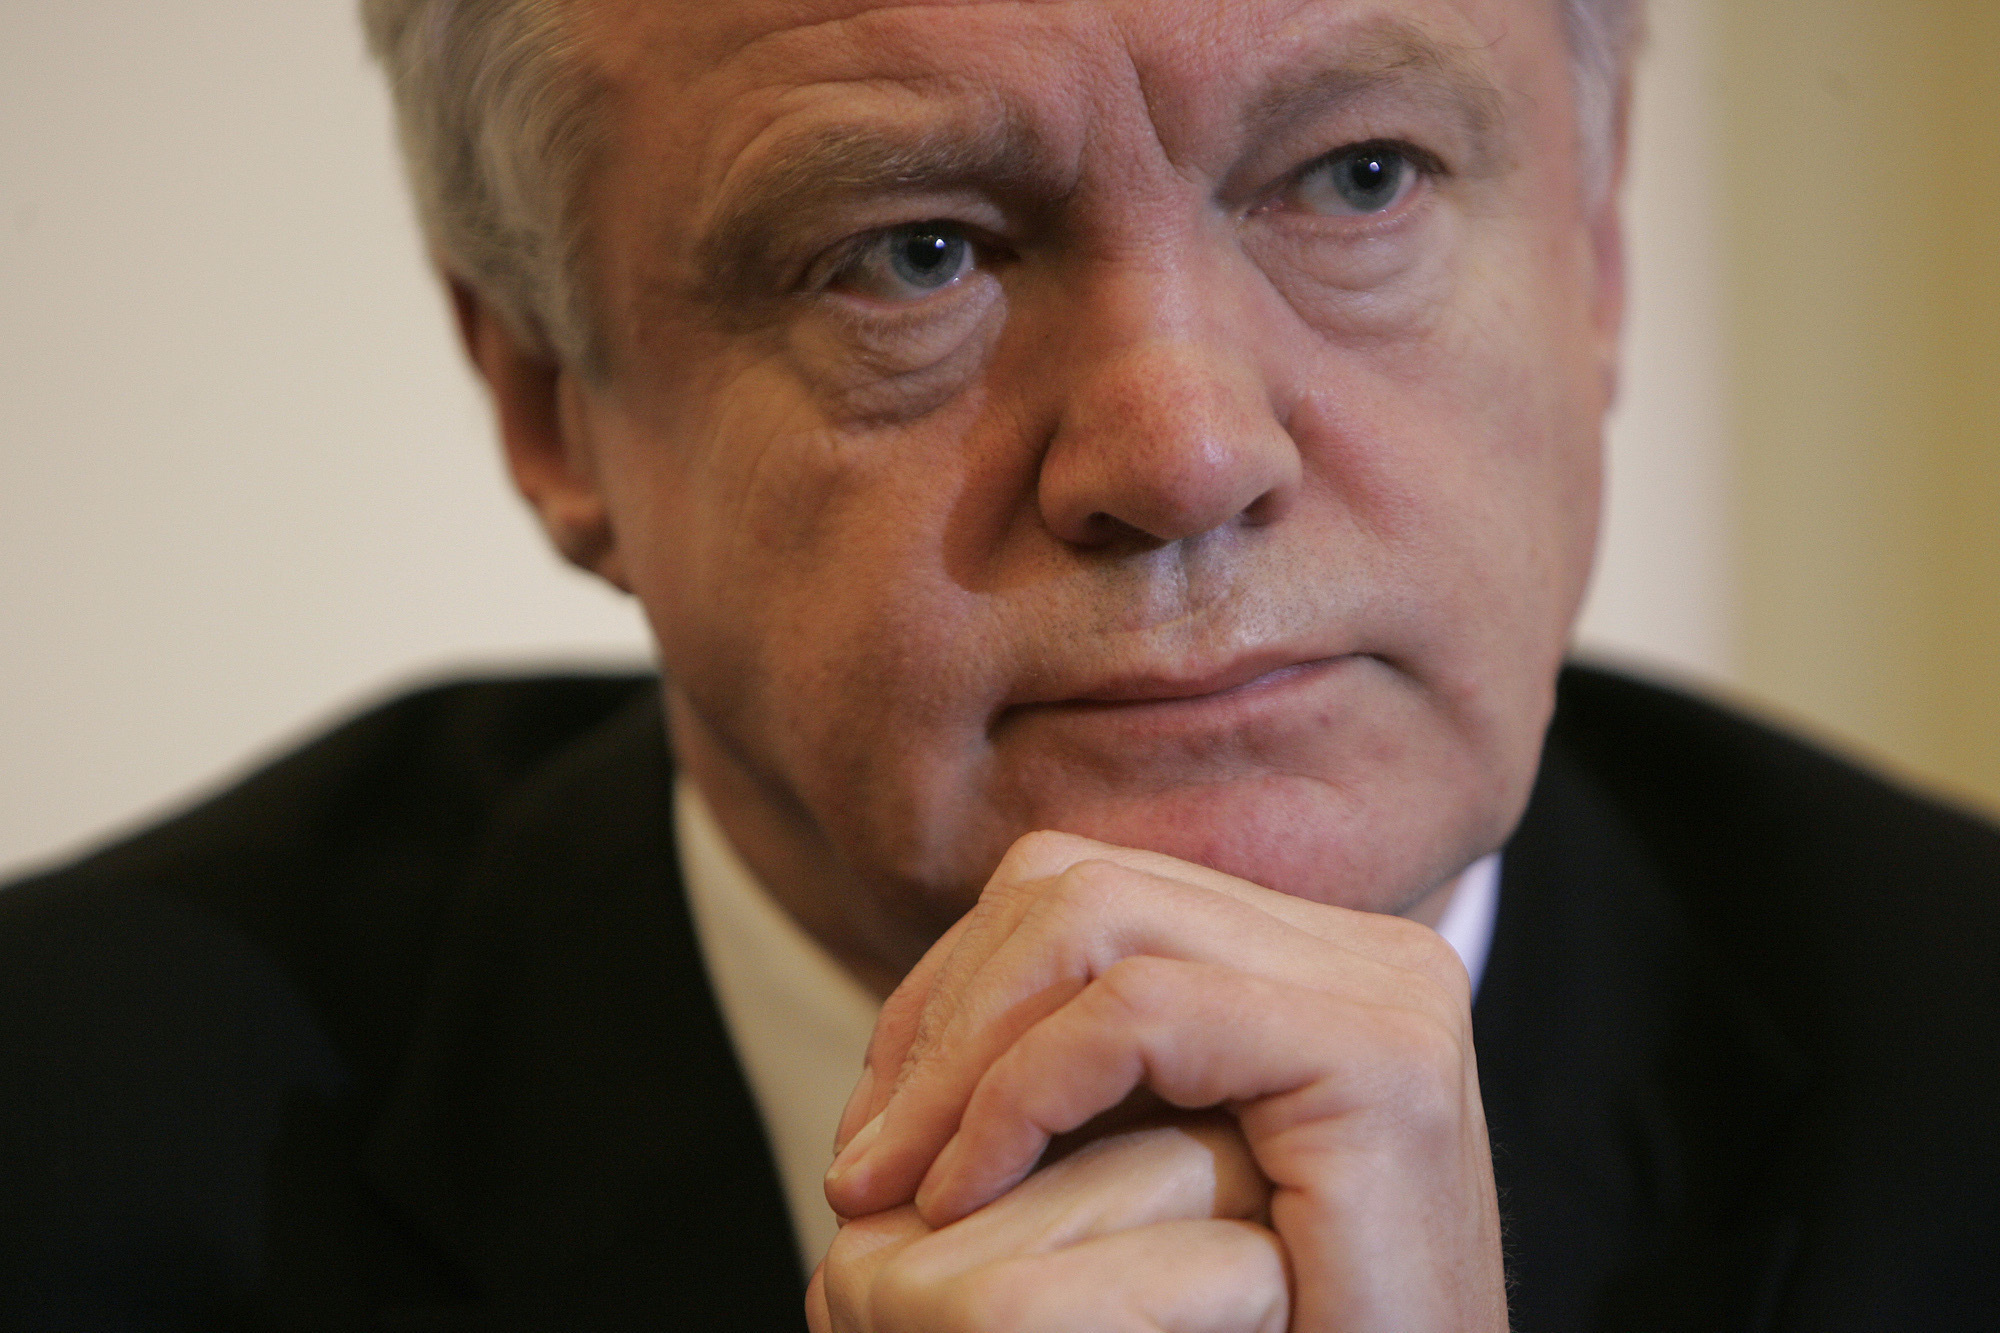 FILE PHOTO David Davis Britain BrexitPhoto by Alastair Grant, AP Photo_252686